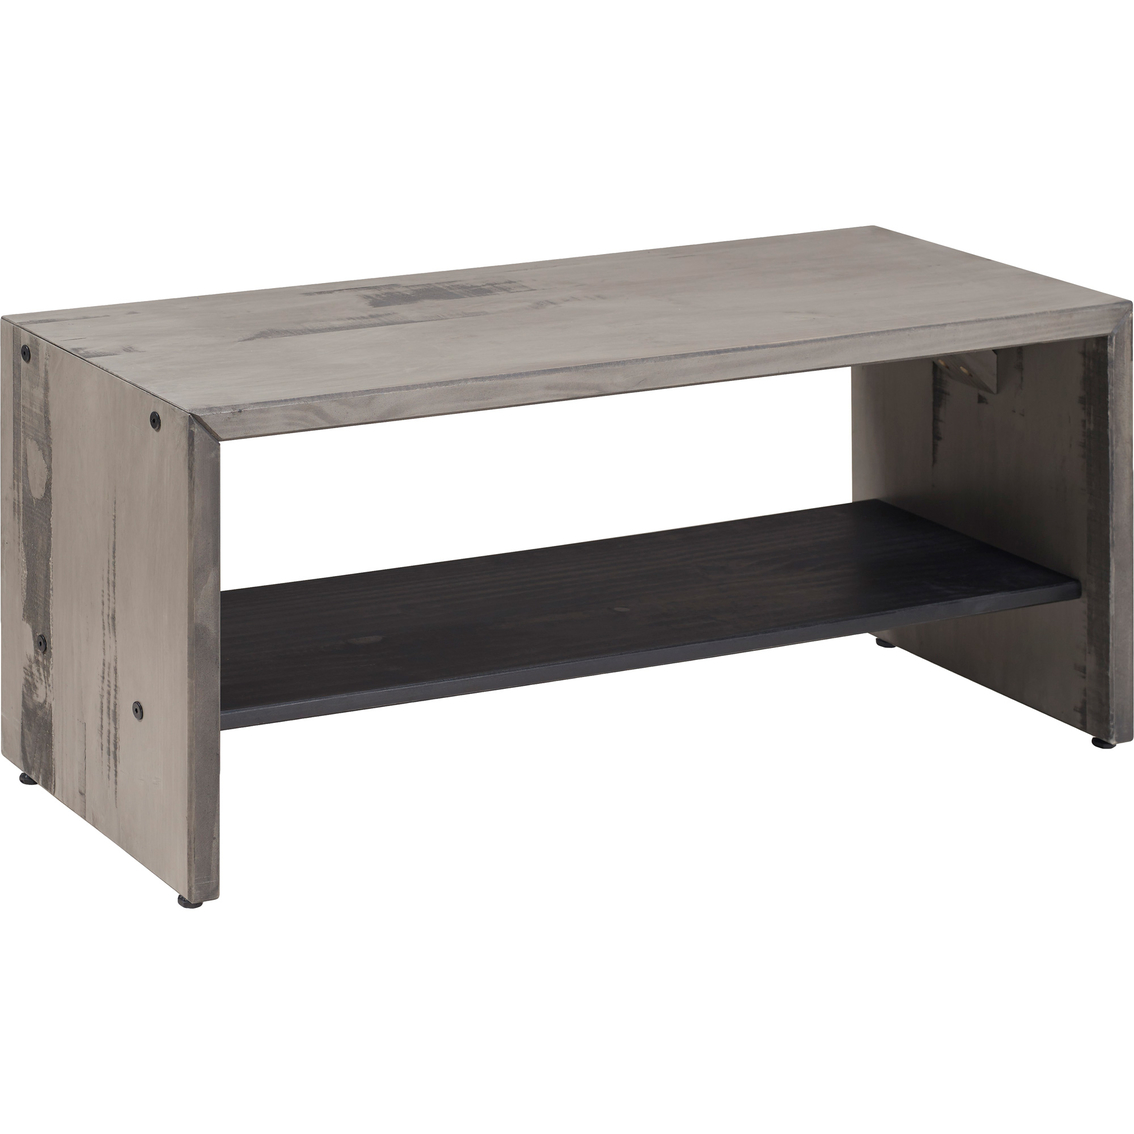 Walker Edison 42 In Rustic Entryway Bench Benches Furniture Appliances Shop The Exchange